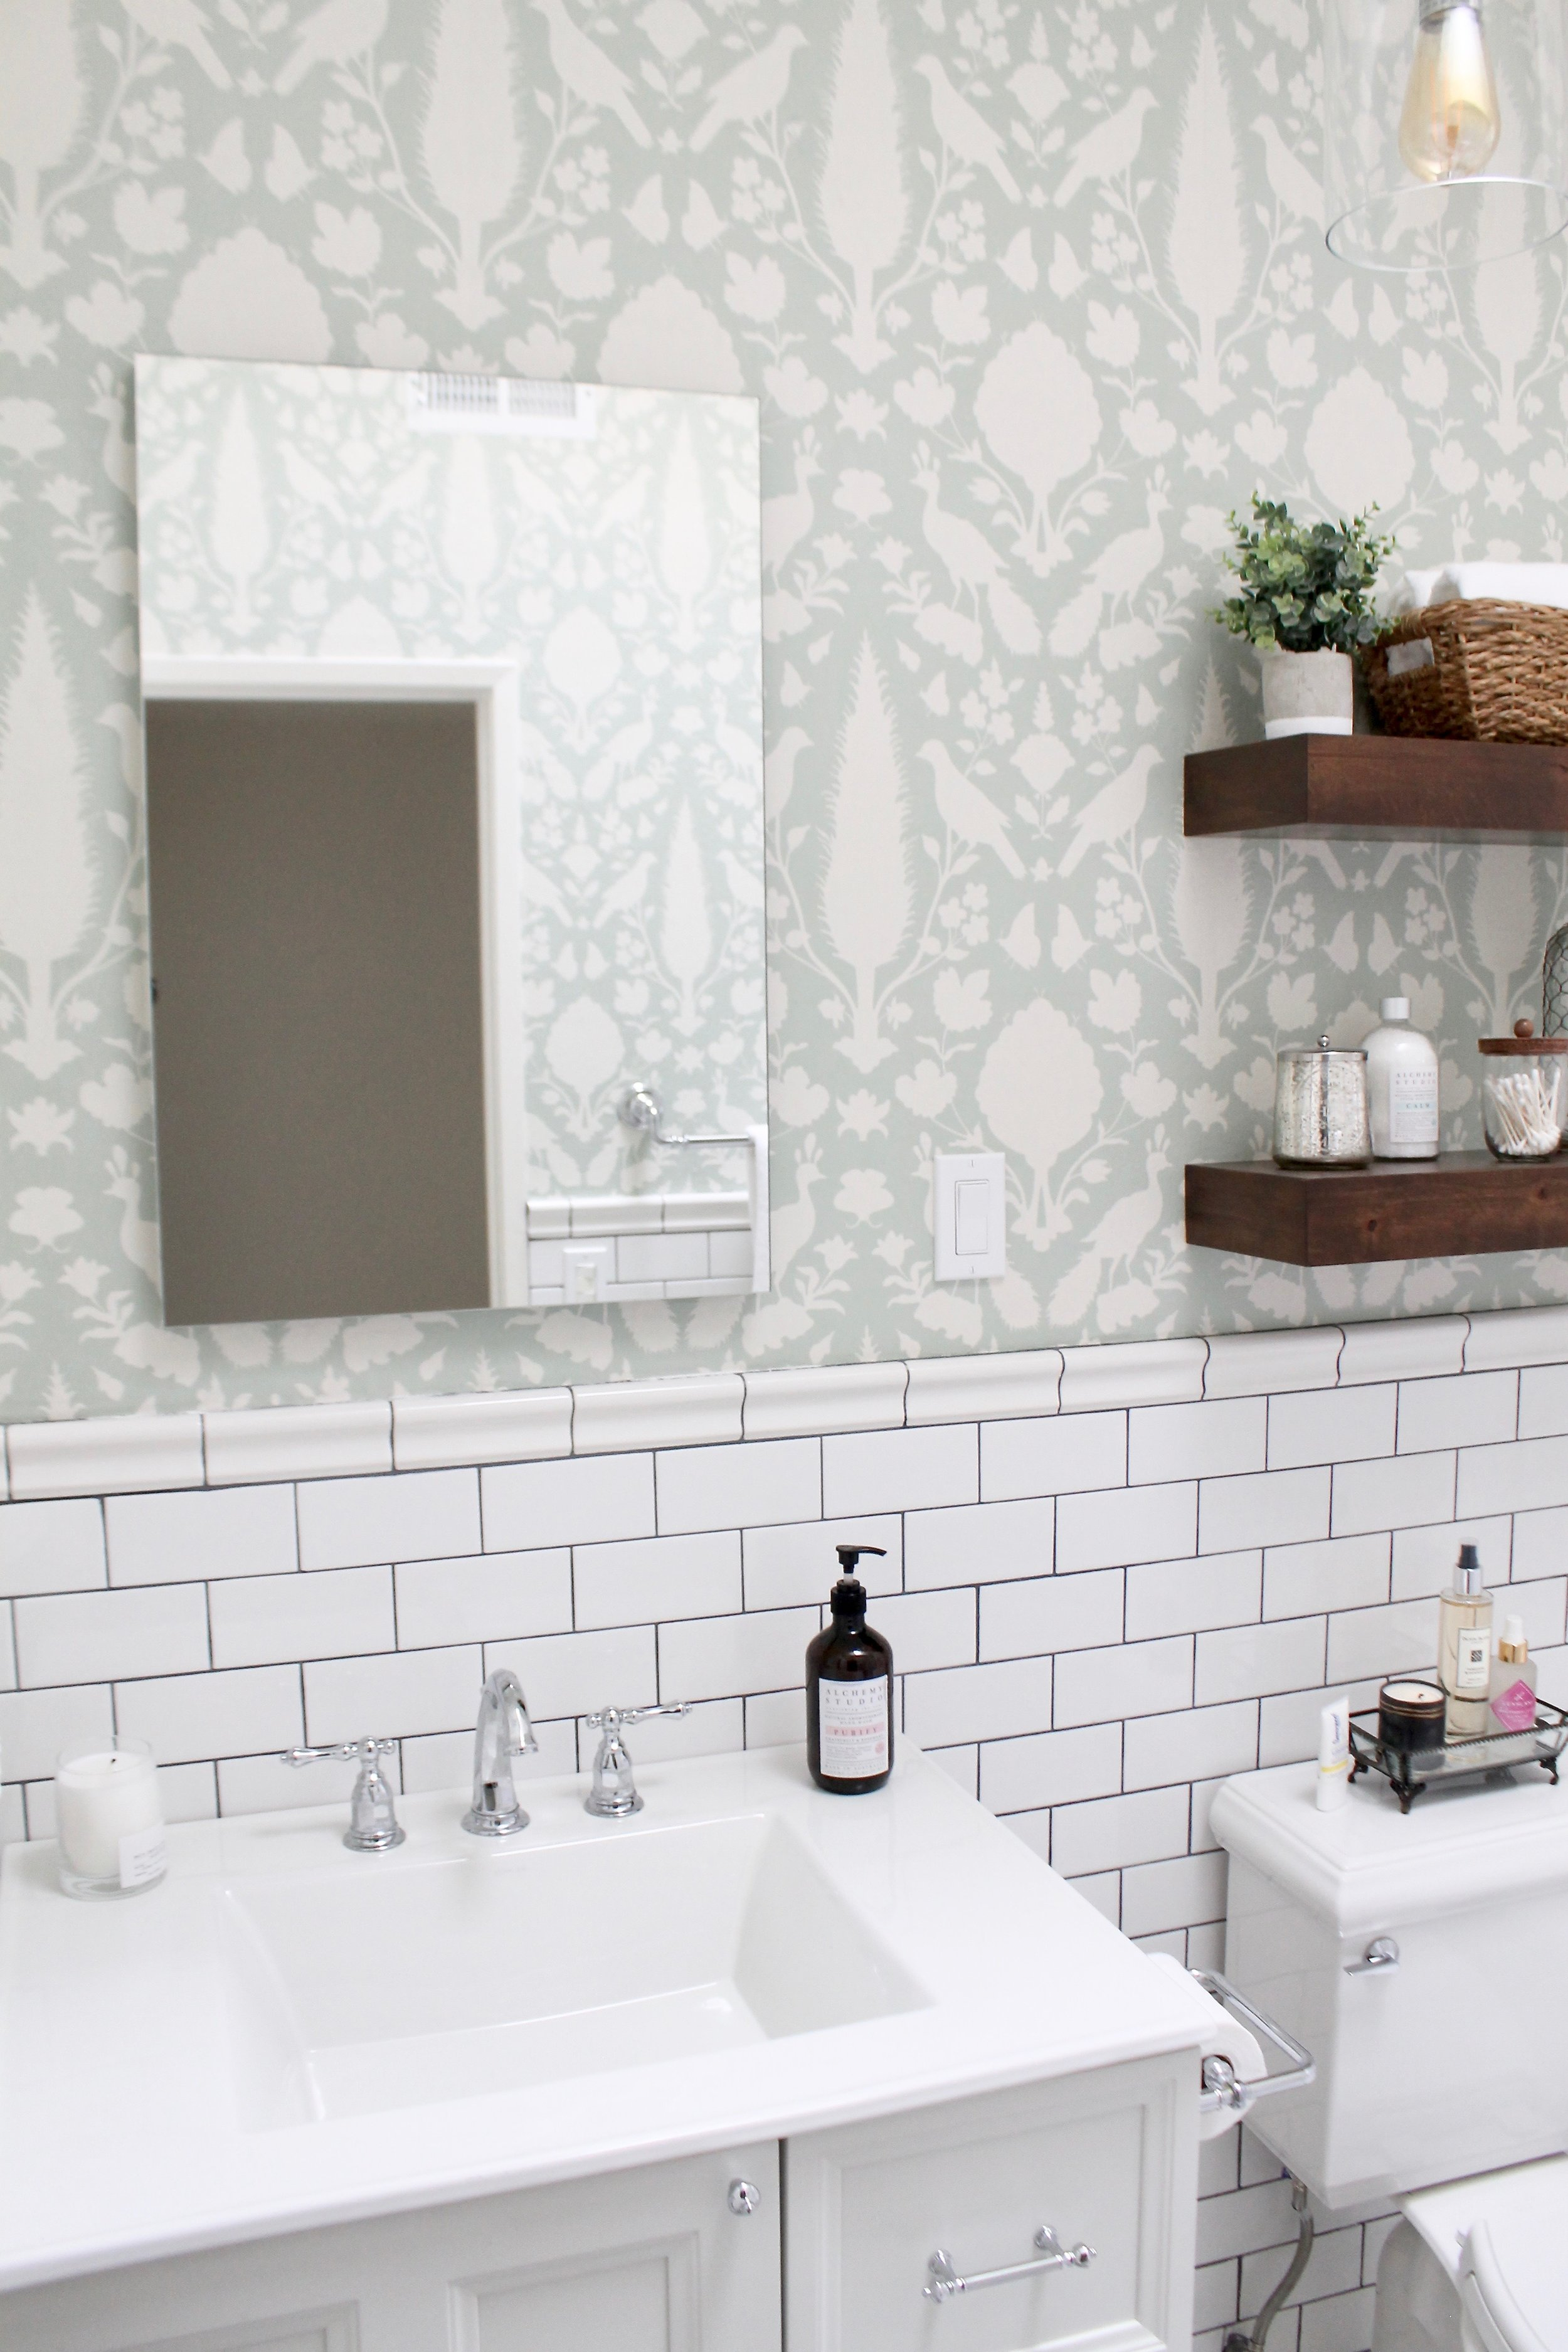 Bathroom Reveal — With Kendra